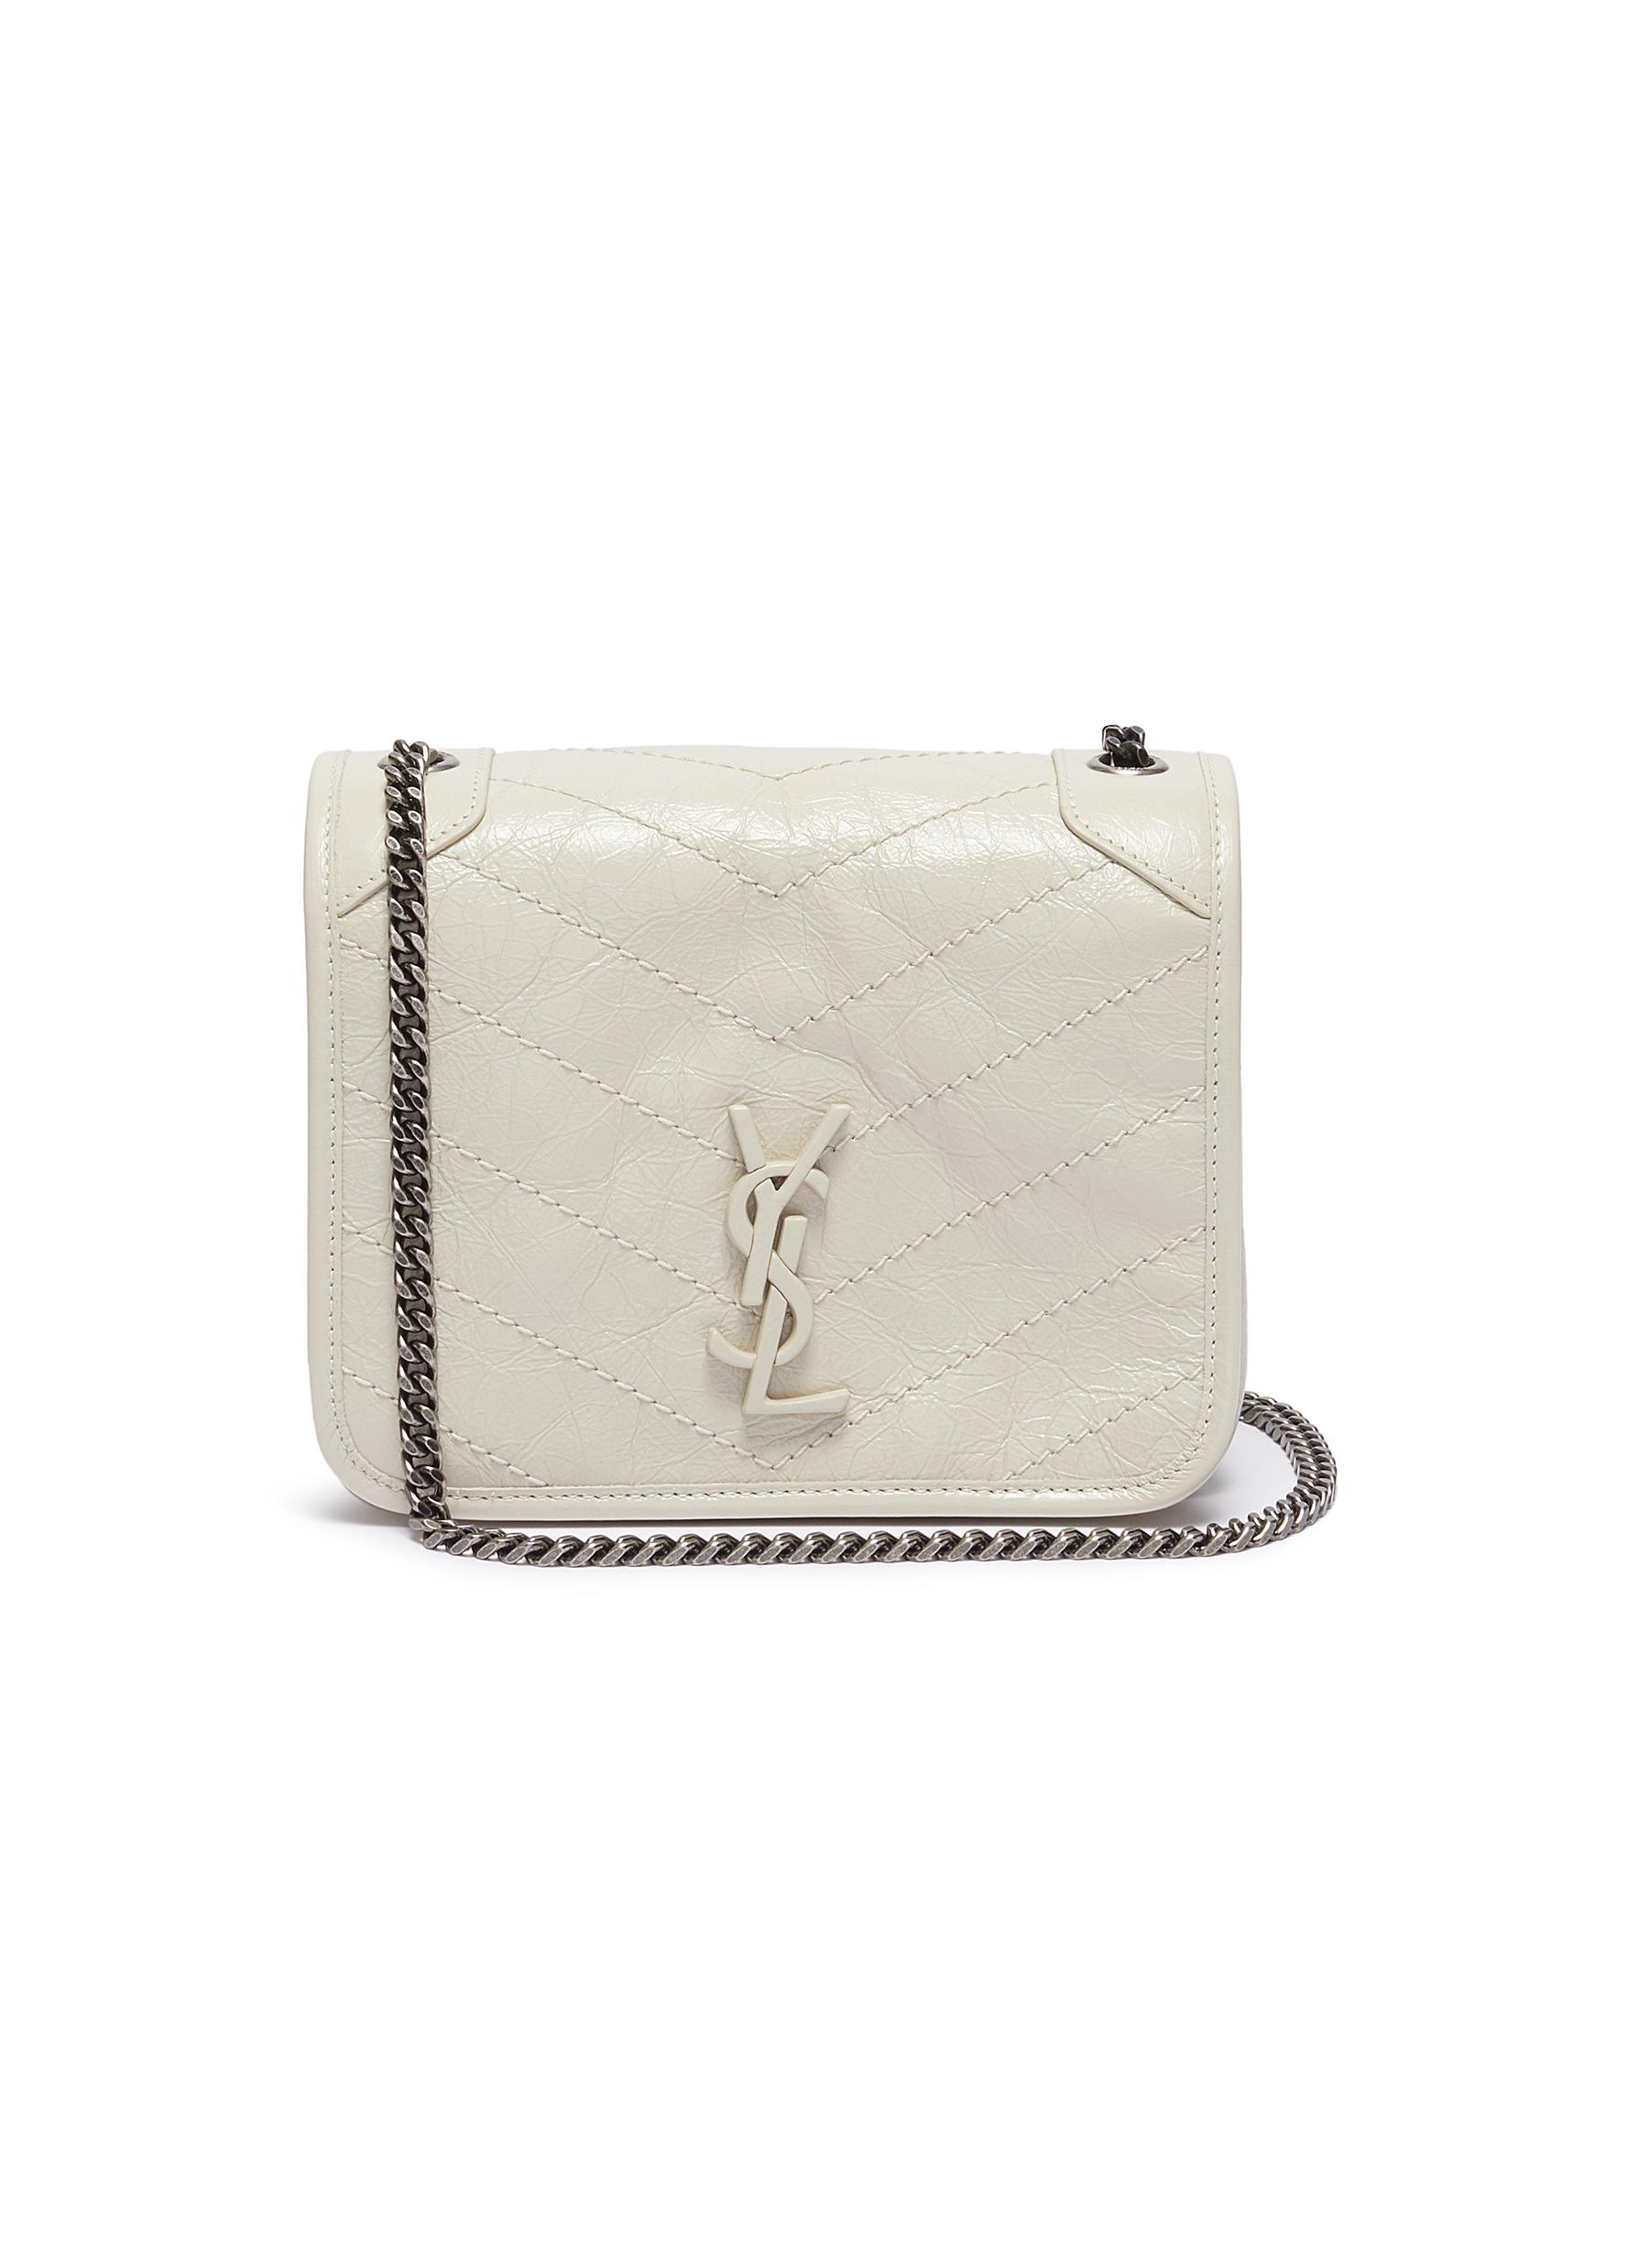 b17723fea2 SAINT LAURENT | 'Niki' crinkled leather chain wallet | Women | Lane ...